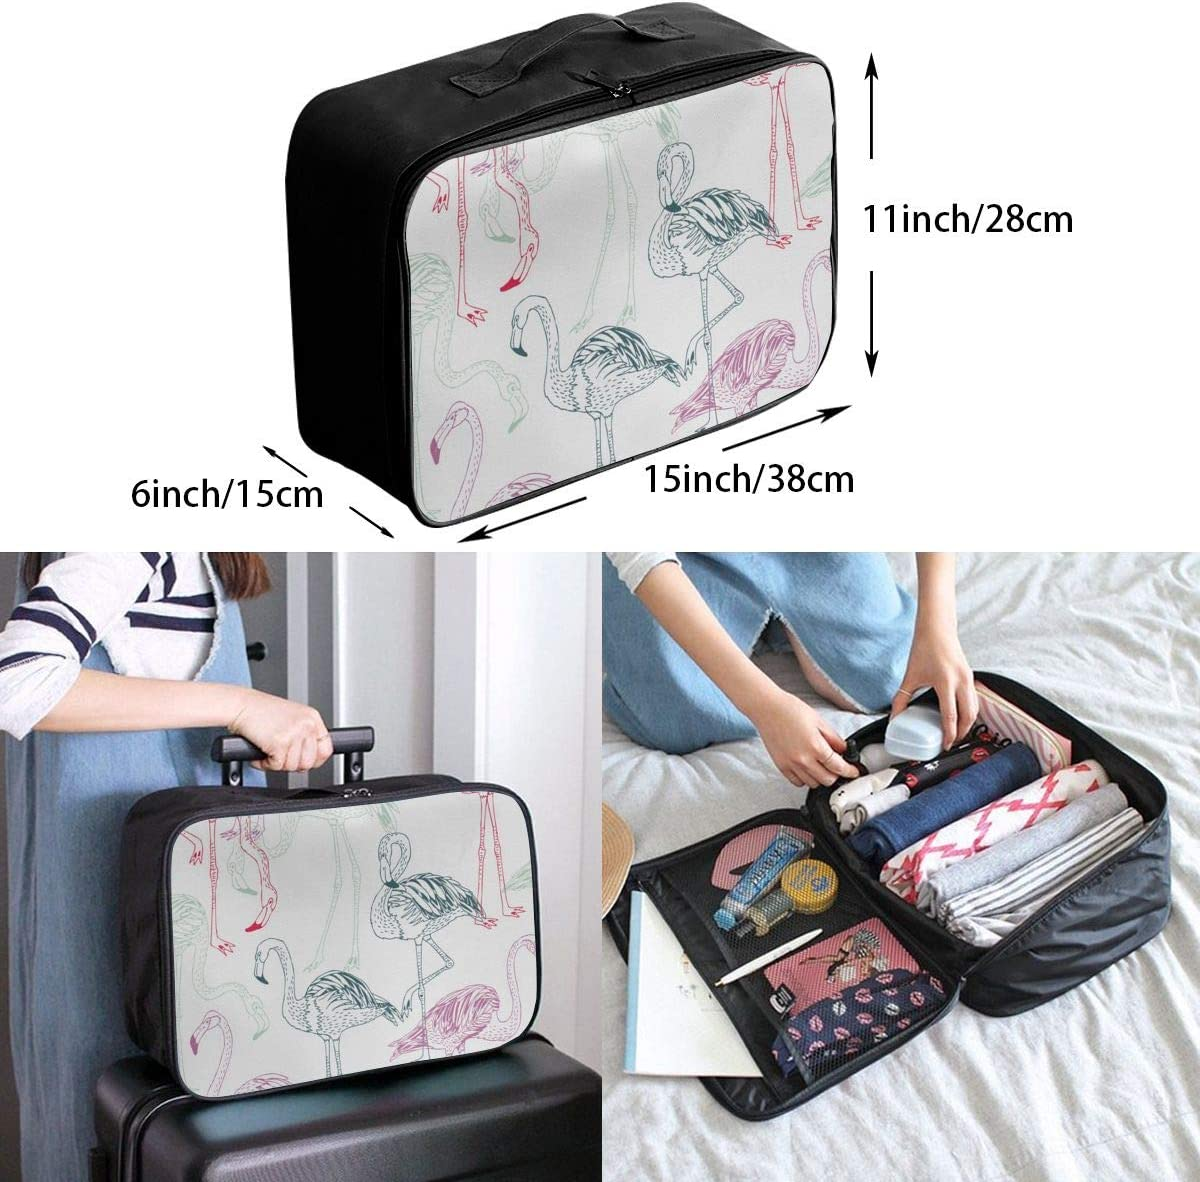 Yunshm Flamingo Drawing Vector Image Customized Trolley Handbag Waterproof Unisex Large Capacity For Business Travel Storage